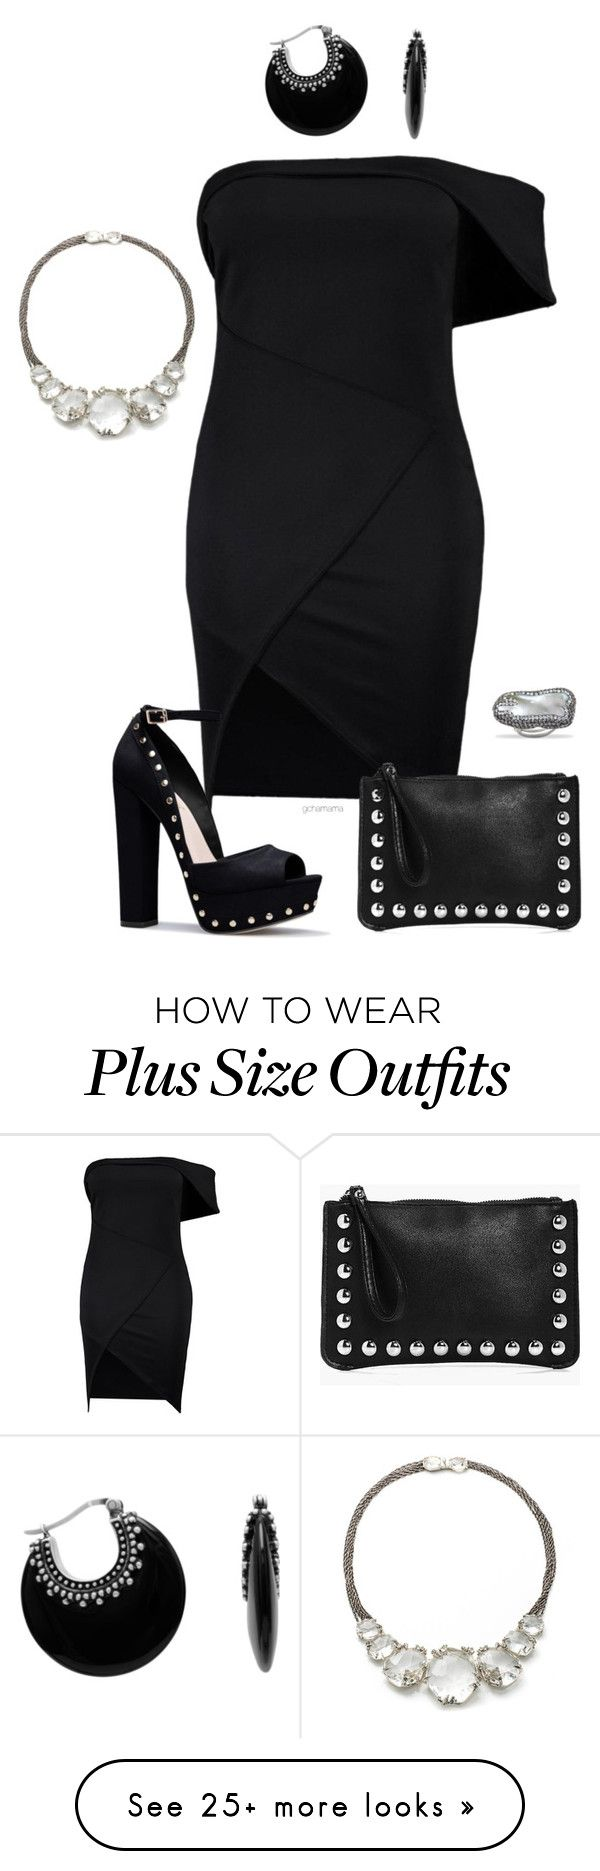 """""""Dark side- plus size"""" by gchamama on Polyvore featuring Boohoo and Alexis Bittar"""